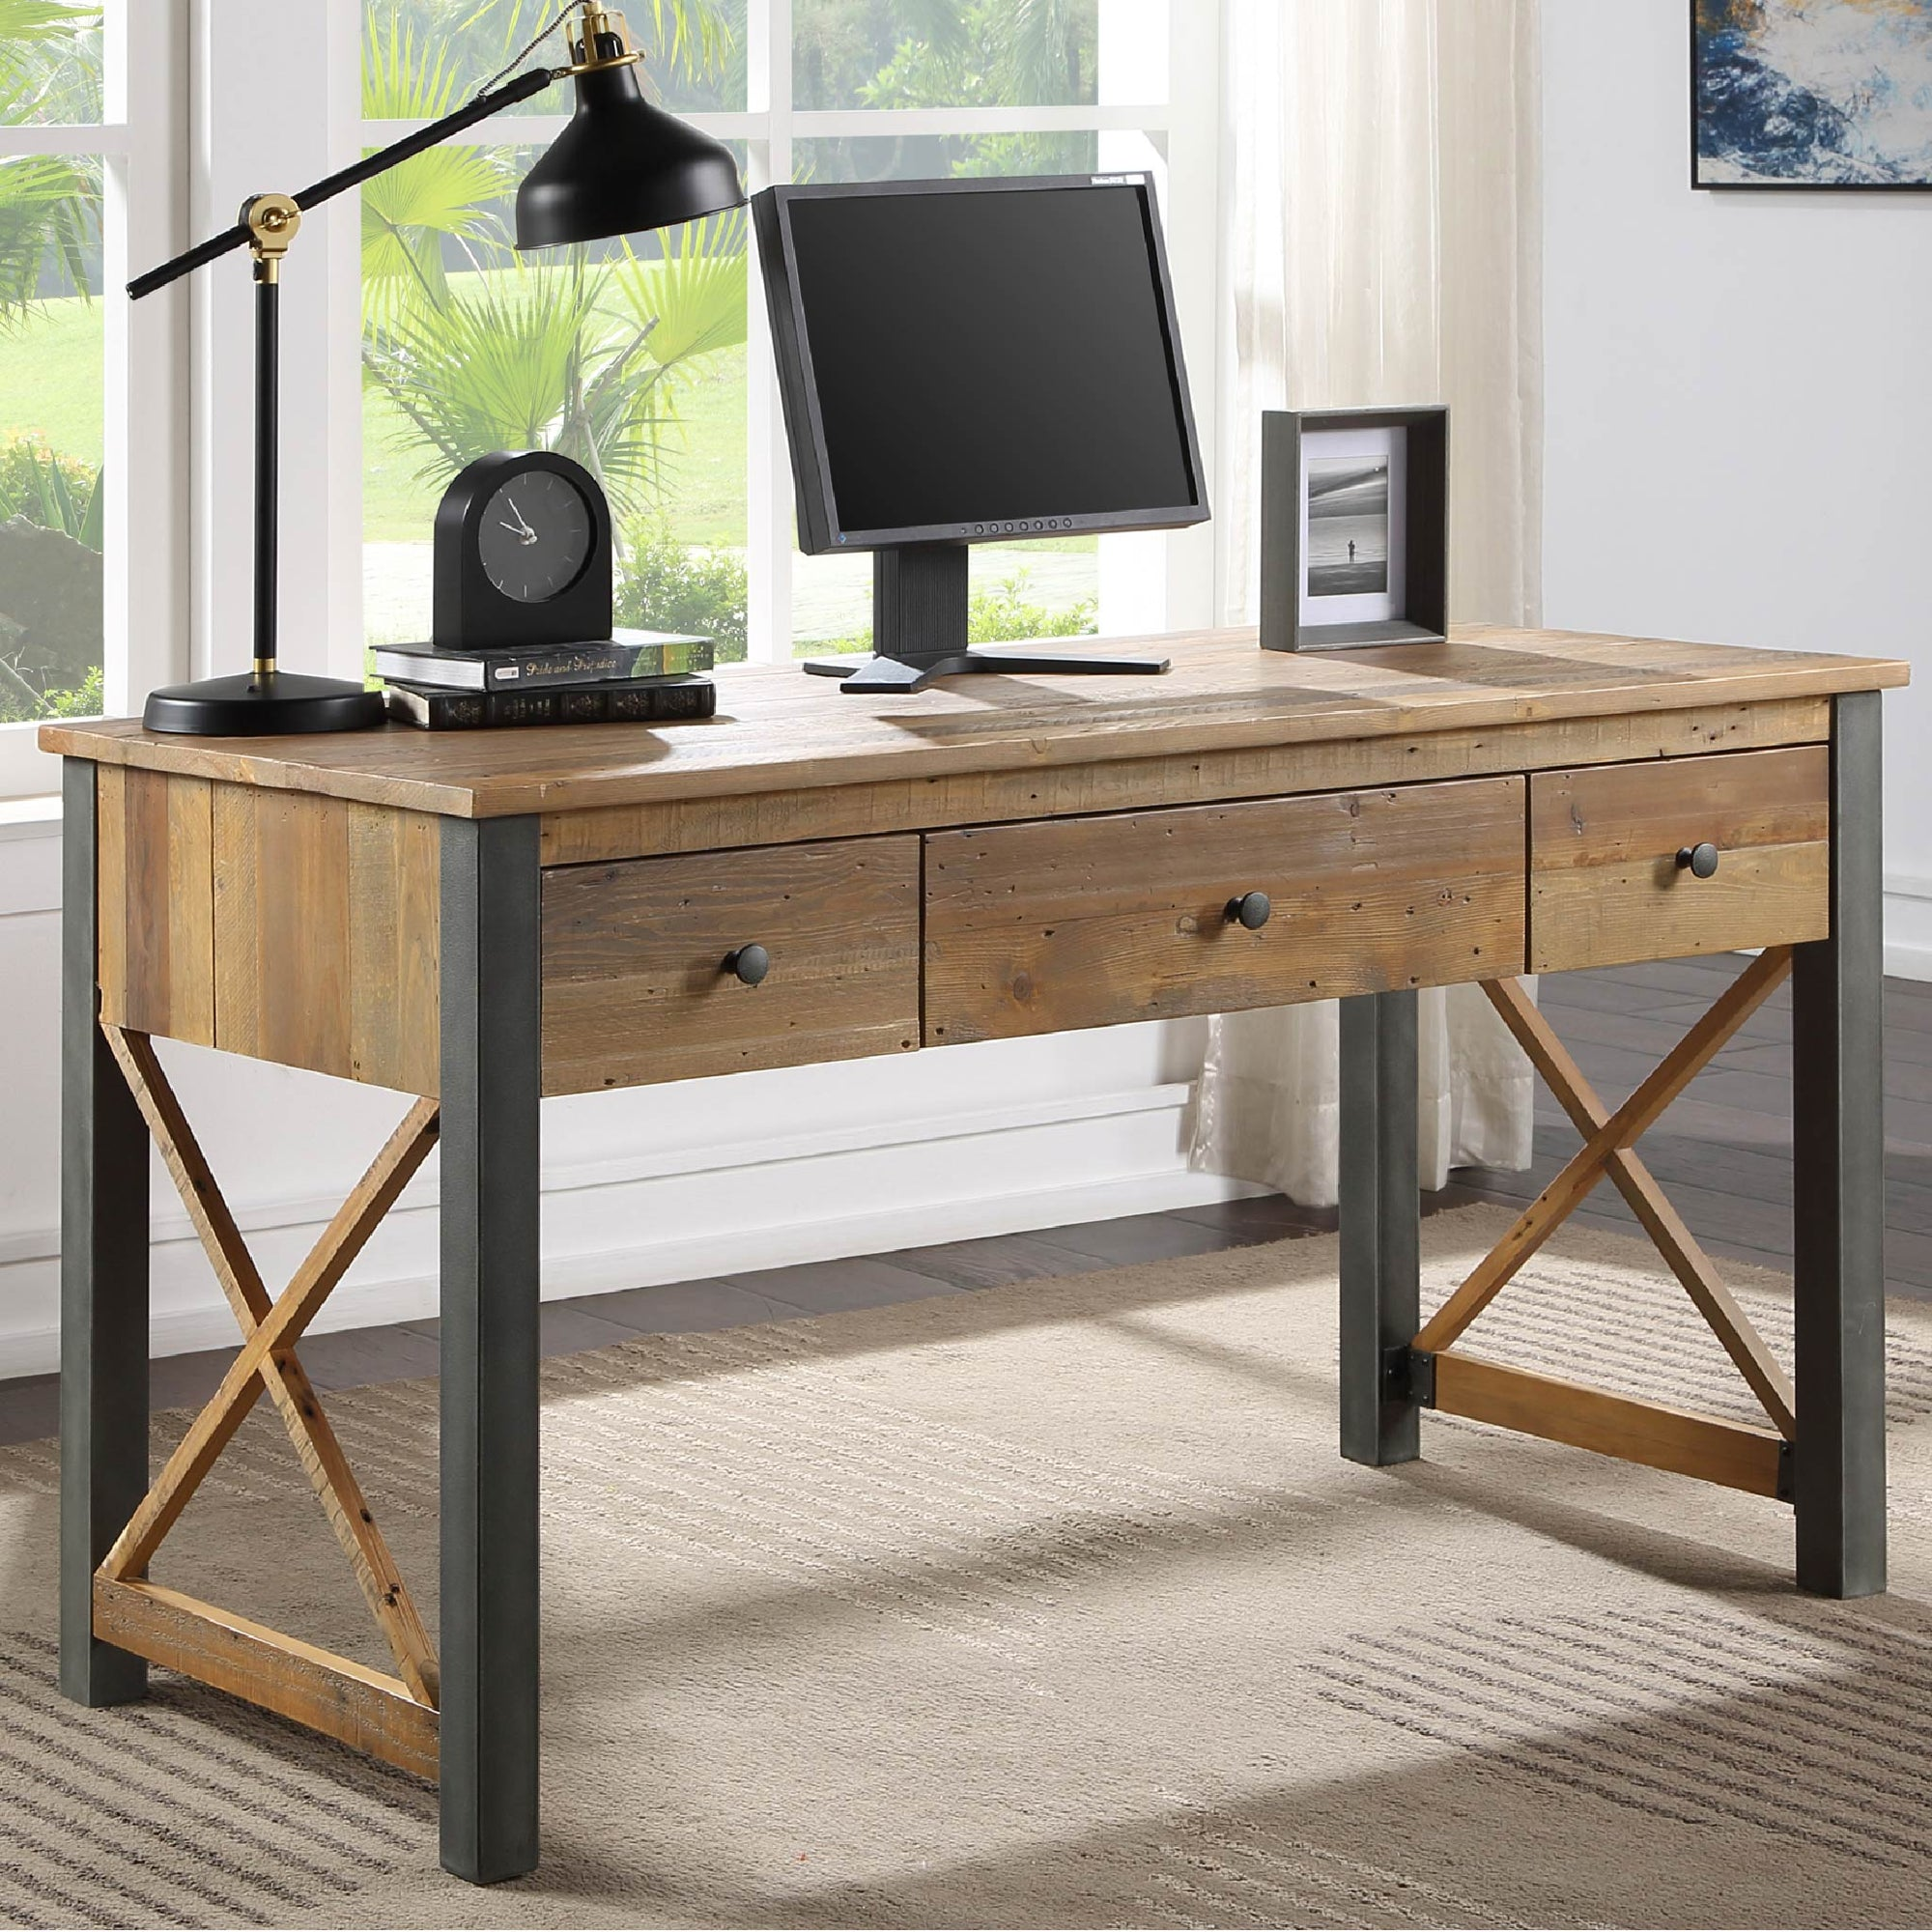 Urban Elegance Reclaimed Wood home Office Desk